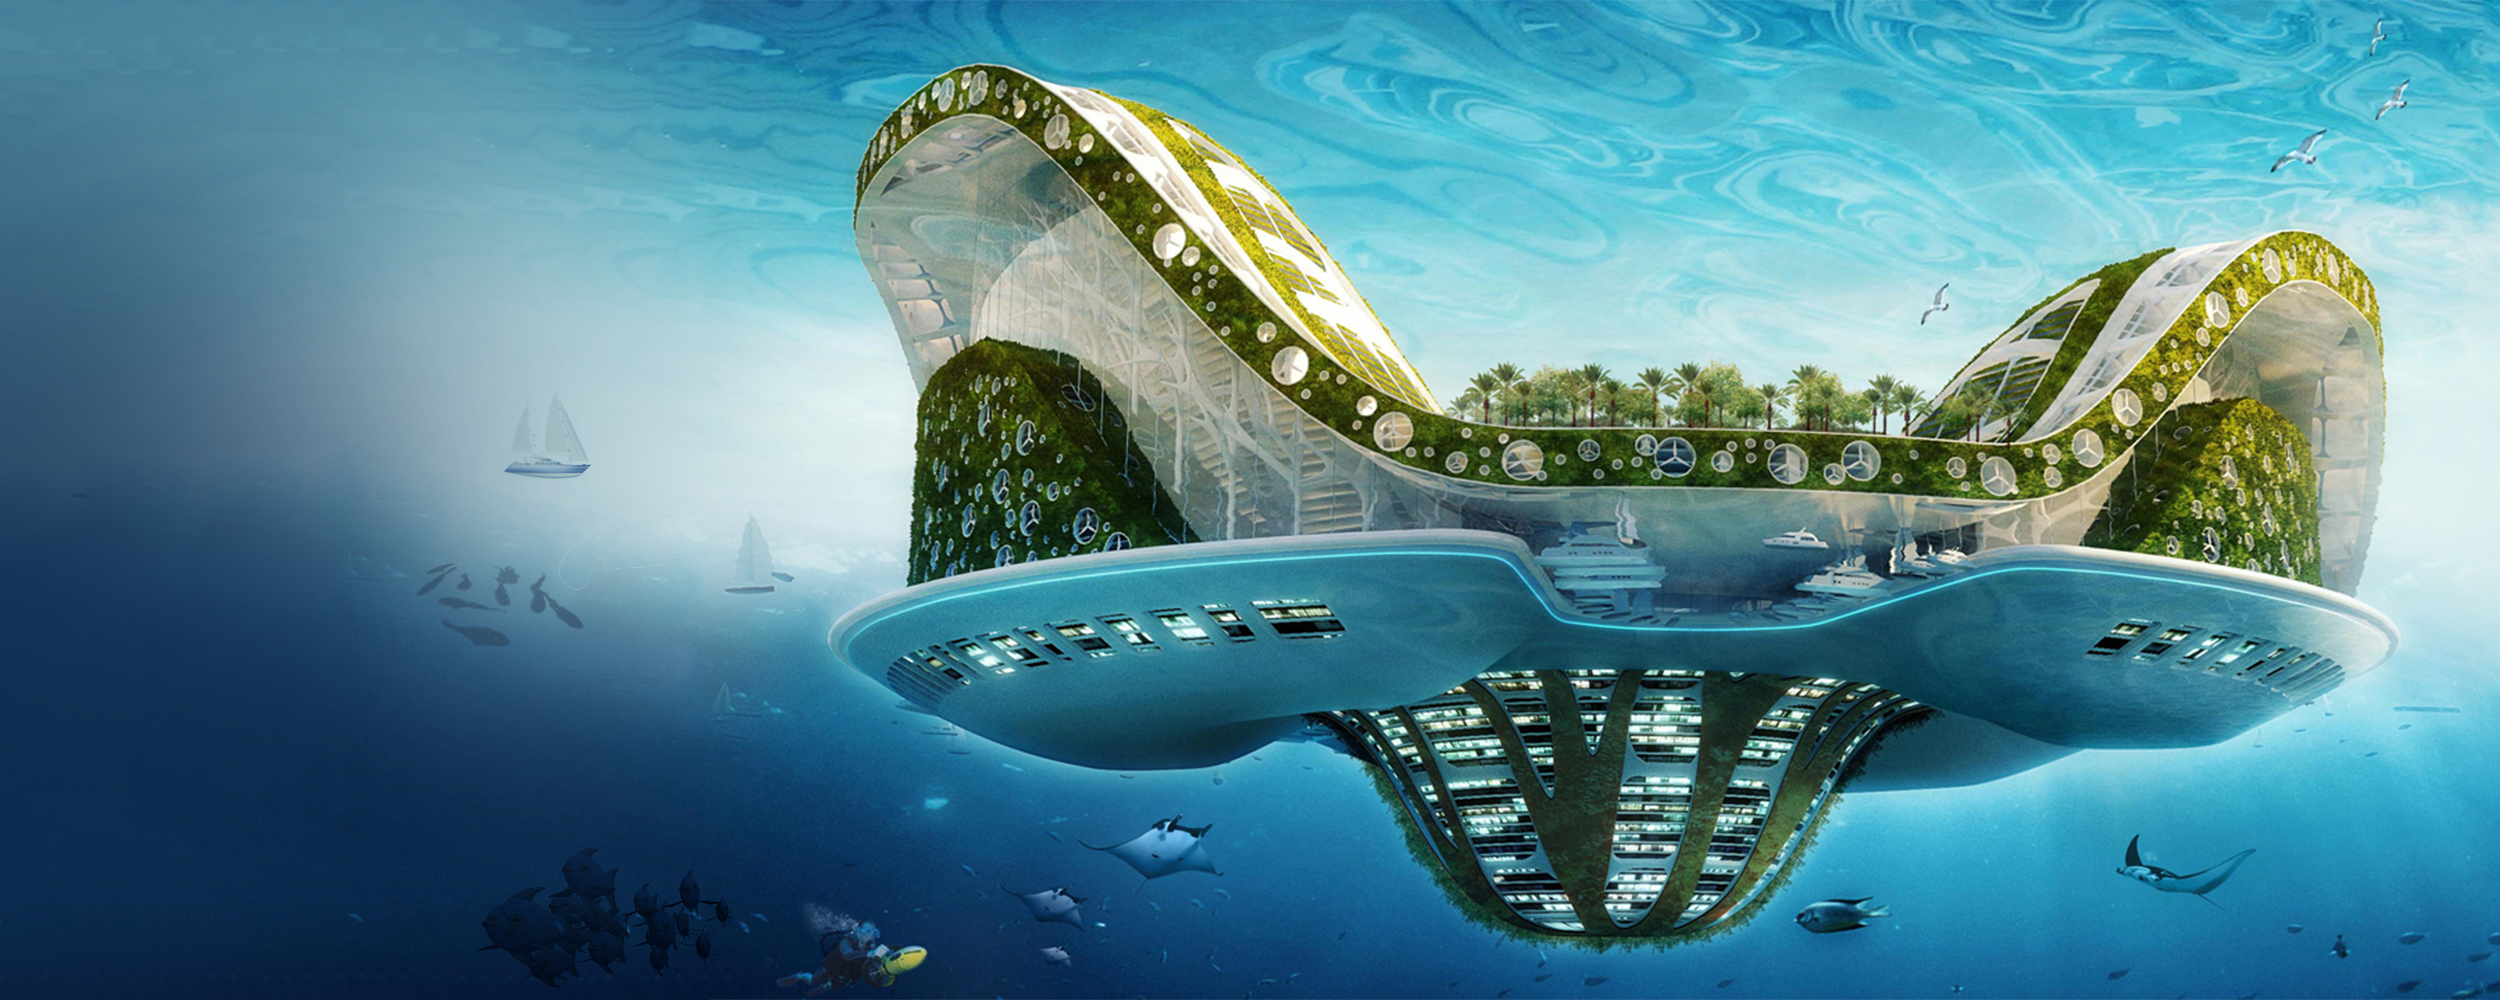 Solarpunk wants to save the world